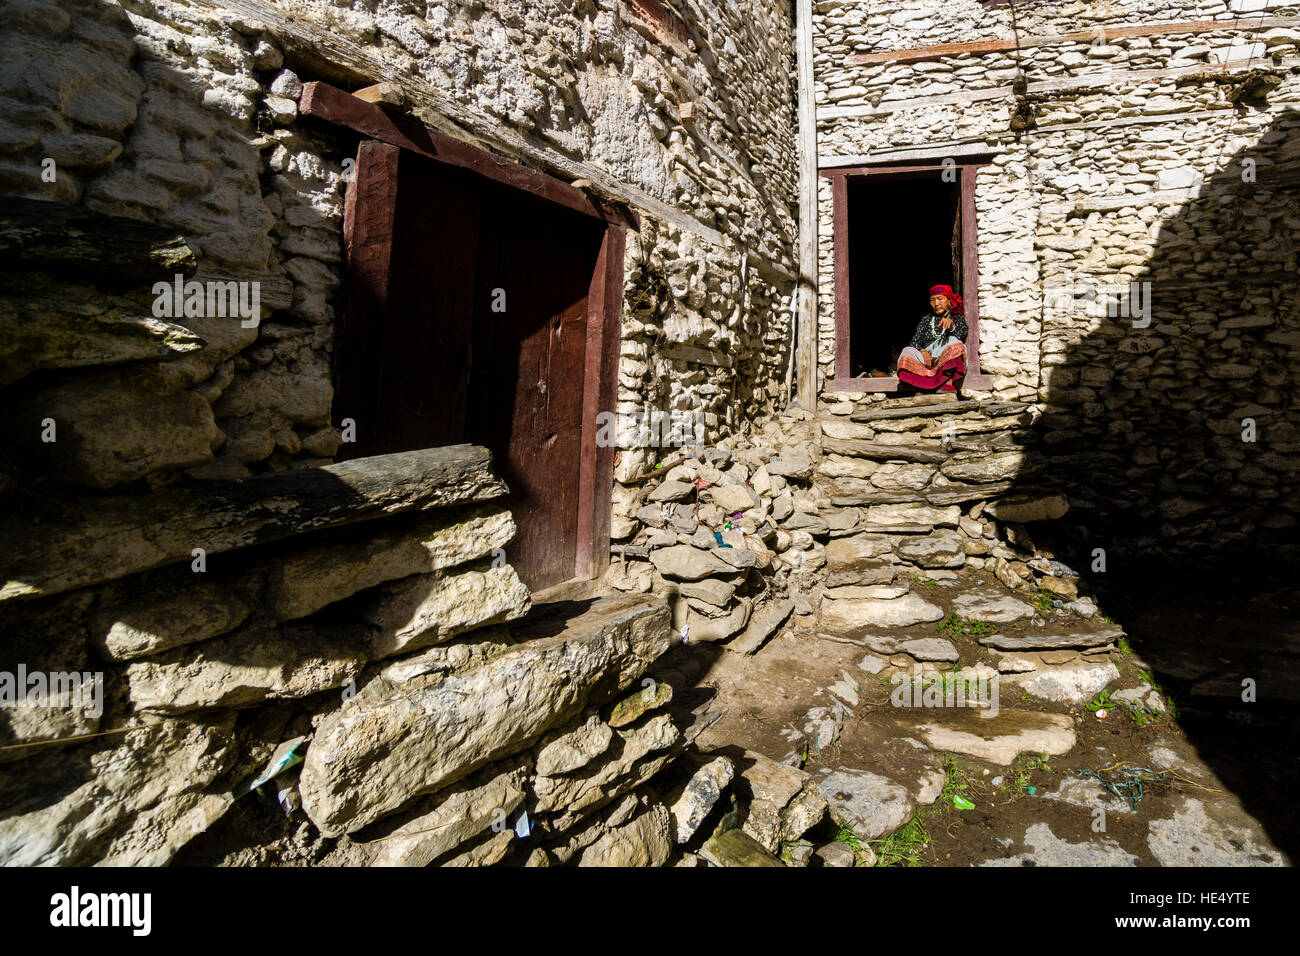 An old local farmers woman is sitting in the door of a stone house Stock Photo